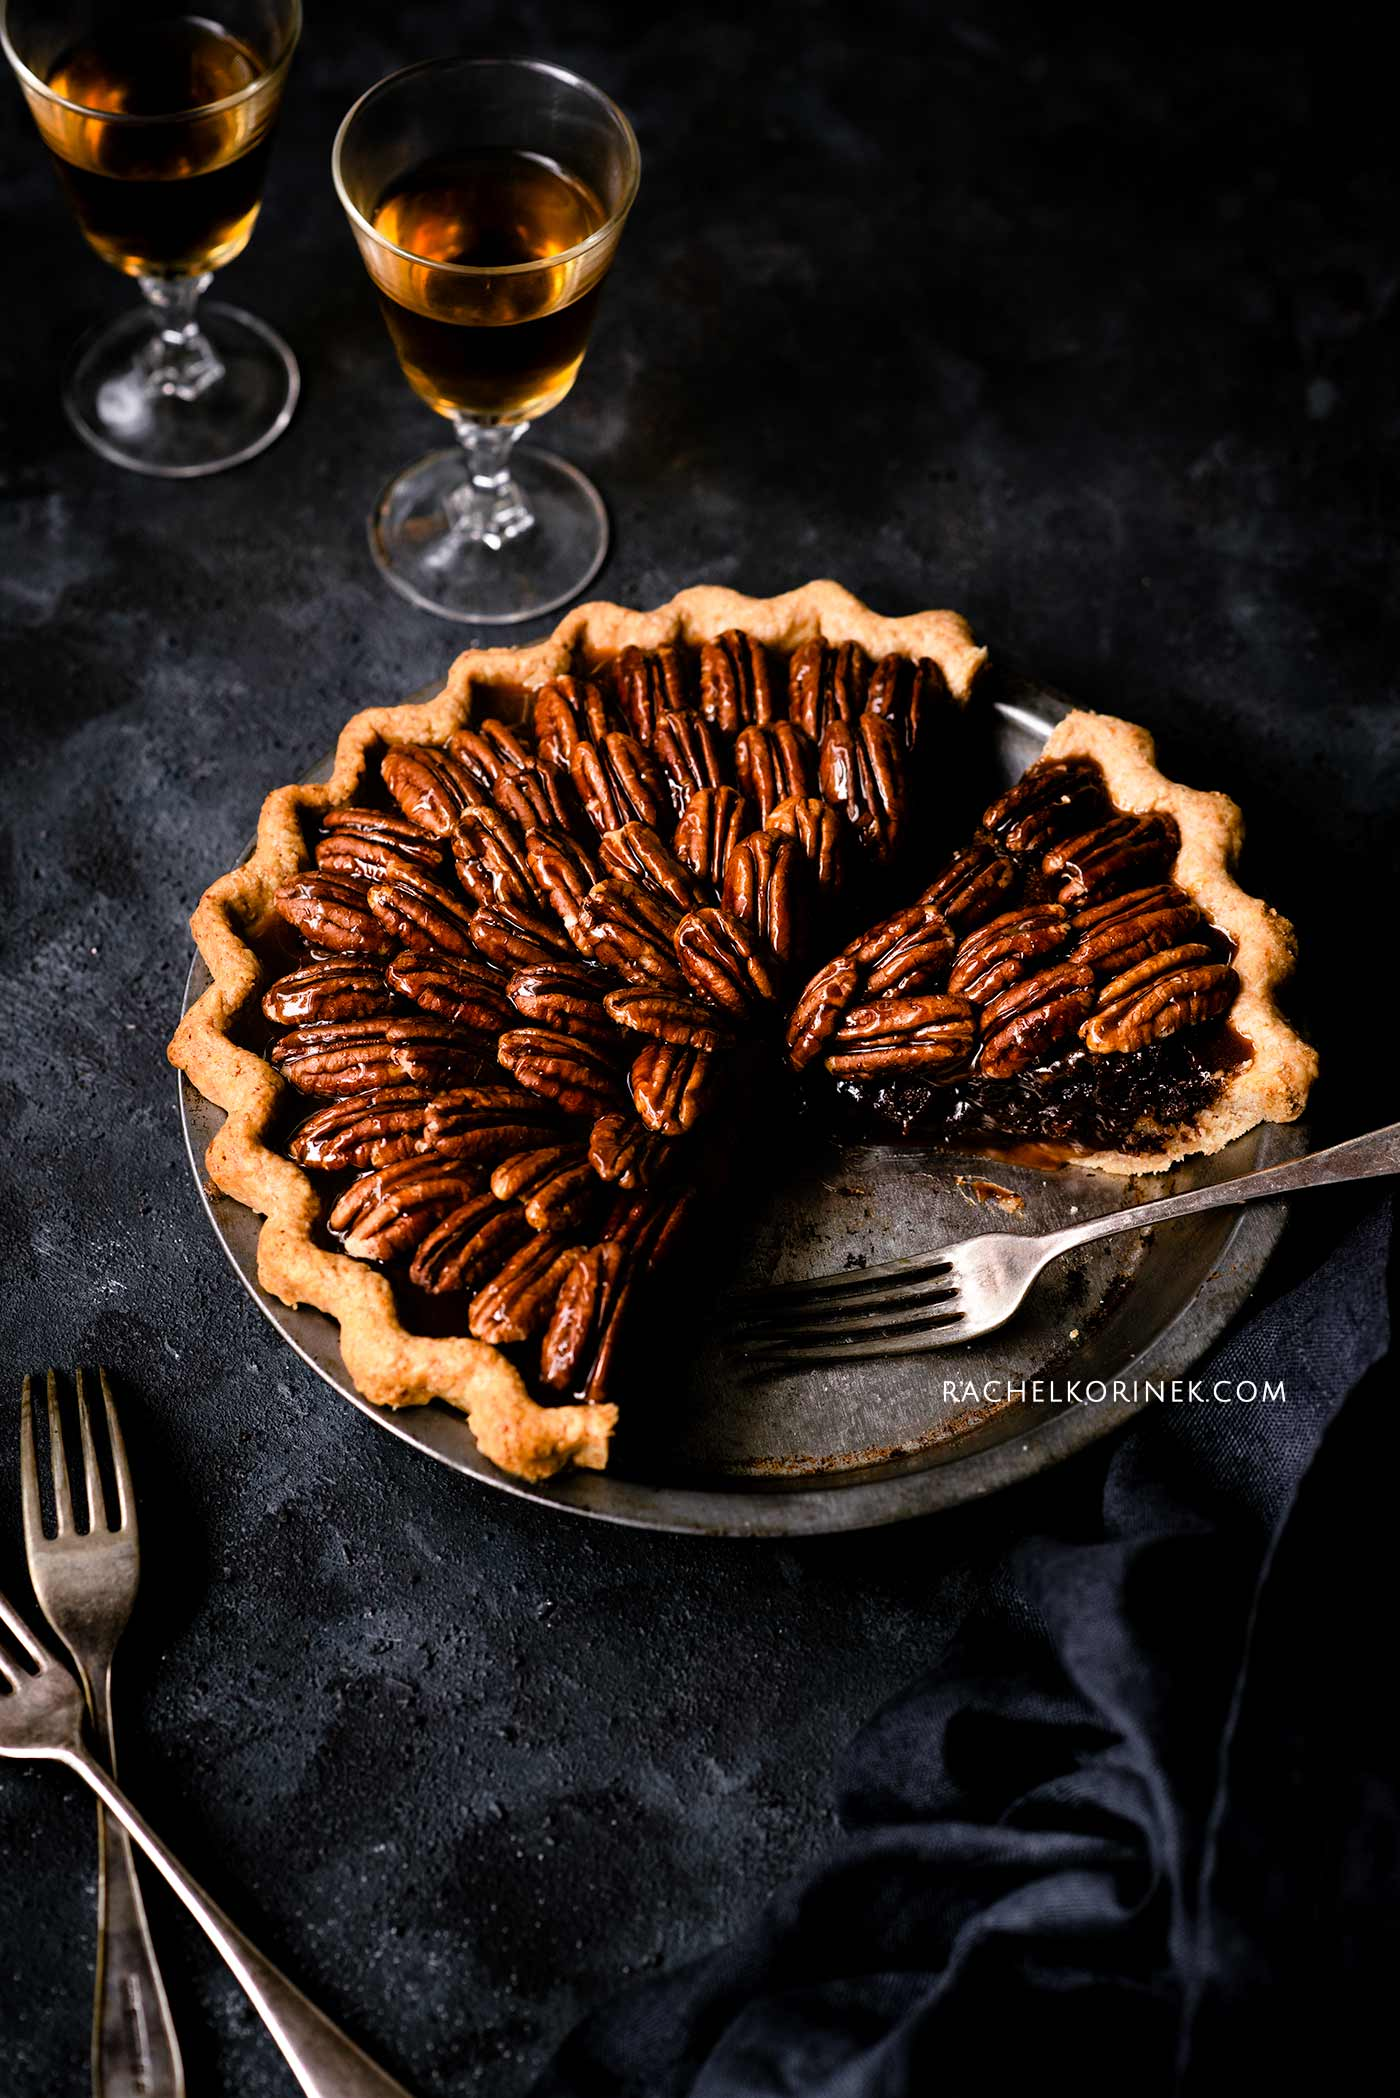 Rachel Korinek | Food Photographer Pecan Pie  Click to check out my latest food photography projects.  #twolovesstudio #beautifulcuisine #foodbloggerpro #foodphotography #learnfoodphotography #foodblogger #learnphotography #foodstyling #lightingtips #naturallight #foodphotographer